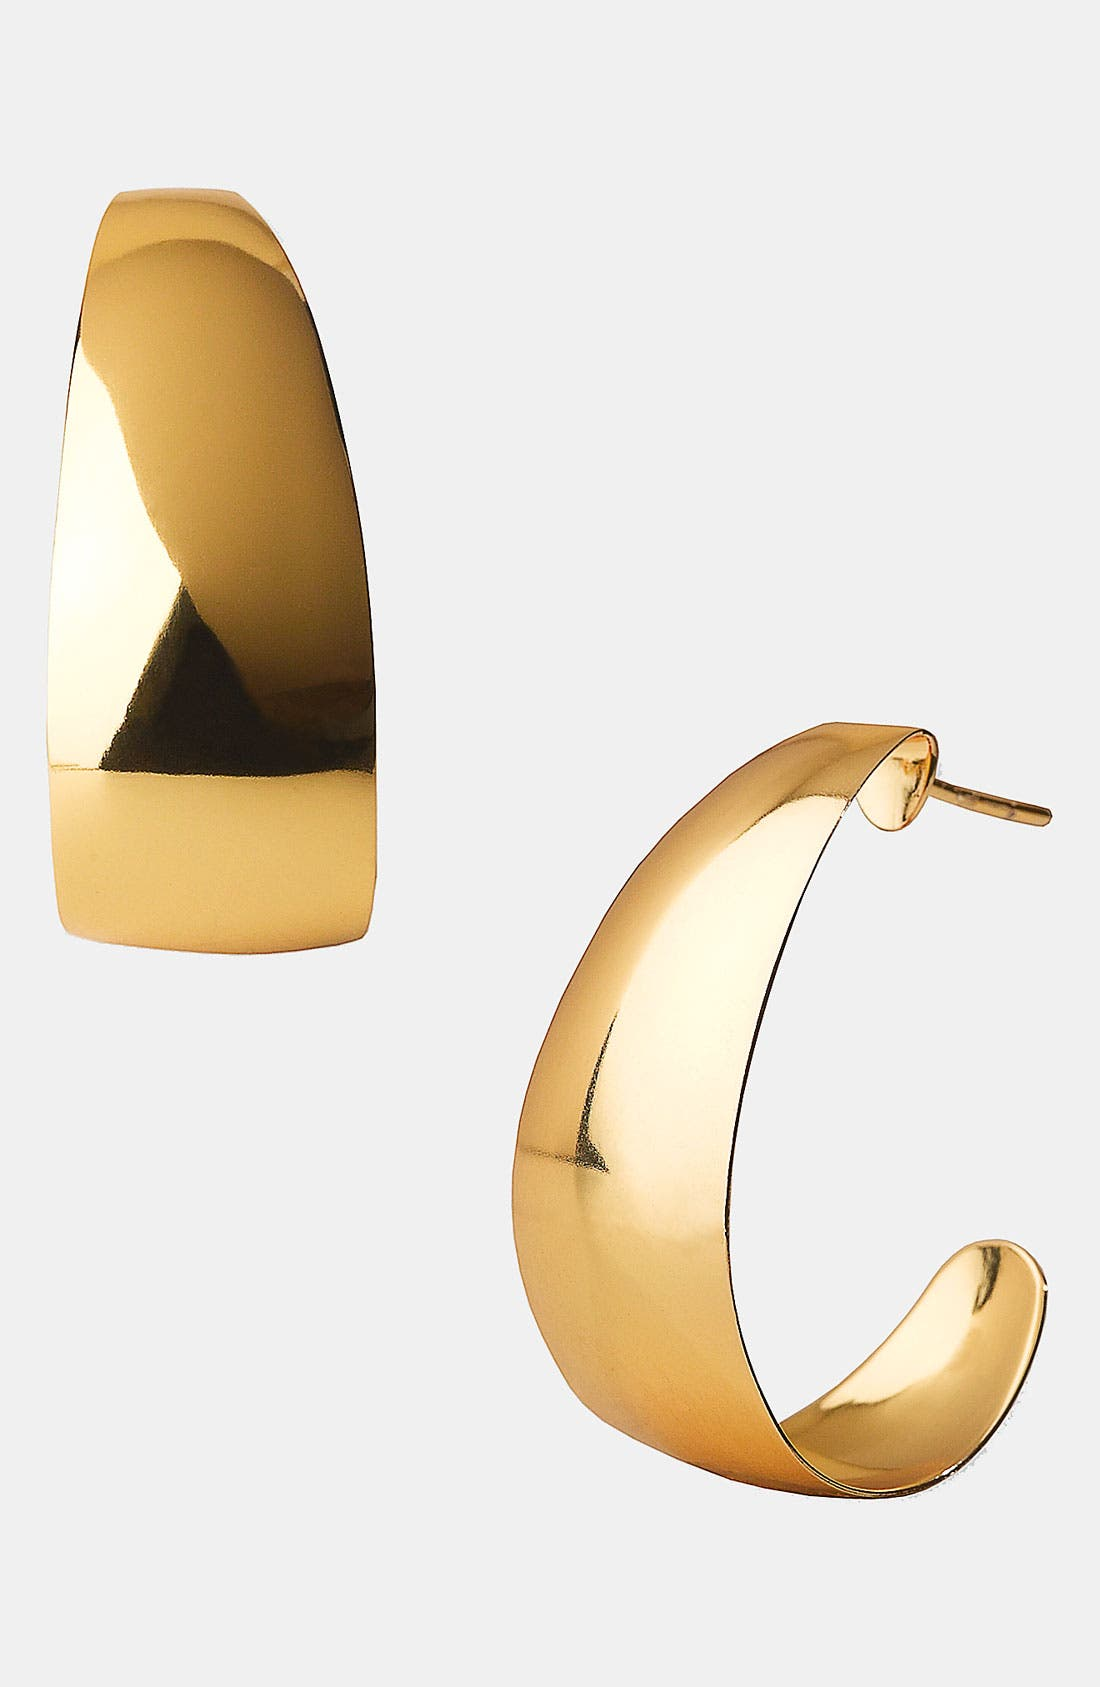 Main Image - Argento Vivo 'Metropolis' J-Hoop Earrings